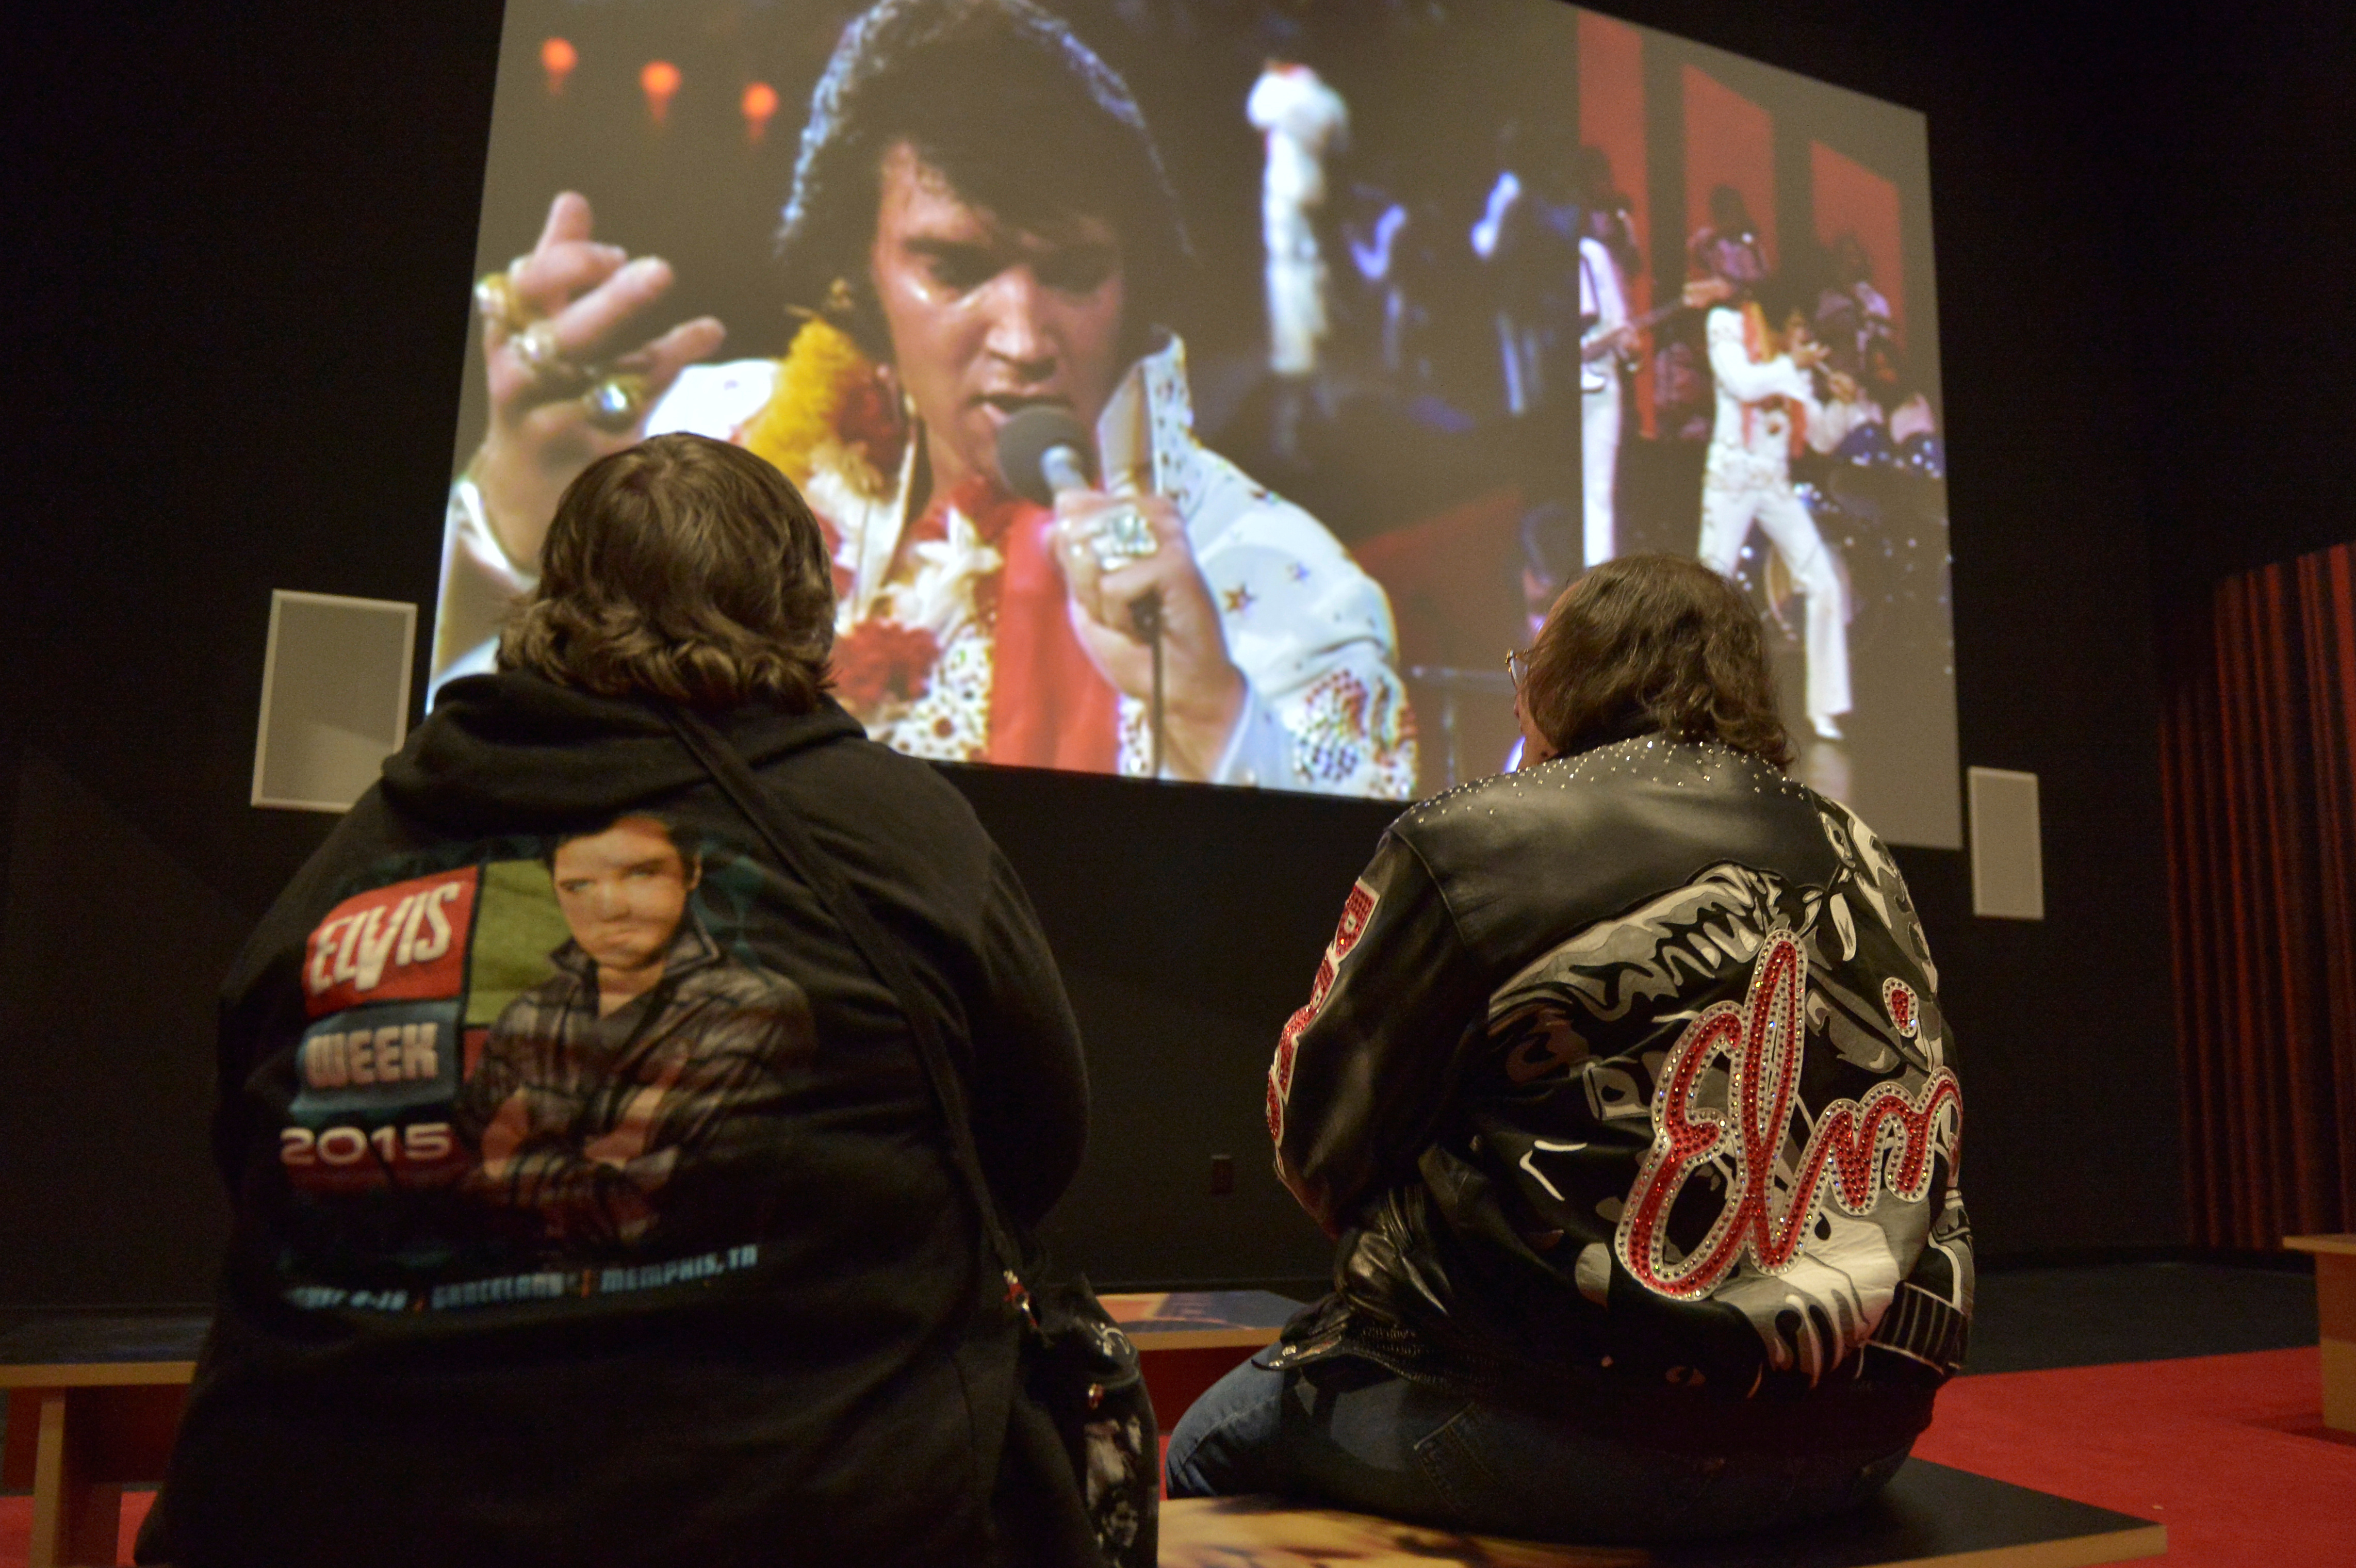 Ann McClain (left) and Neil Spencer of Knoxville, Tennessee watch a video of Elvis Presley performing. Photo by Brandon Dill/Reuters